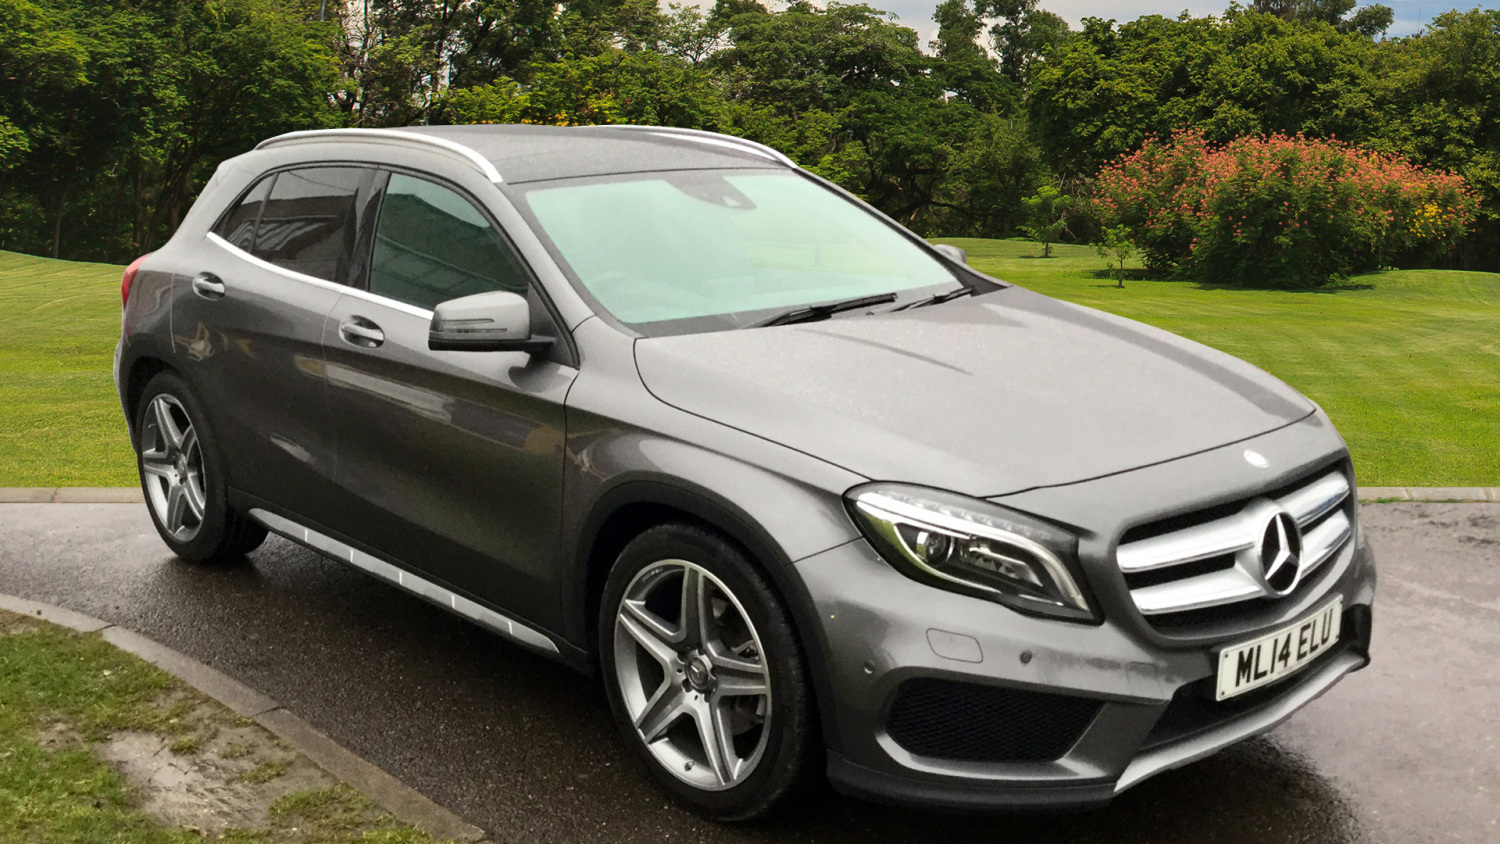 Used Mercedes Benz Gla Gla 220 Cdi 4matic Amg Line 5dr